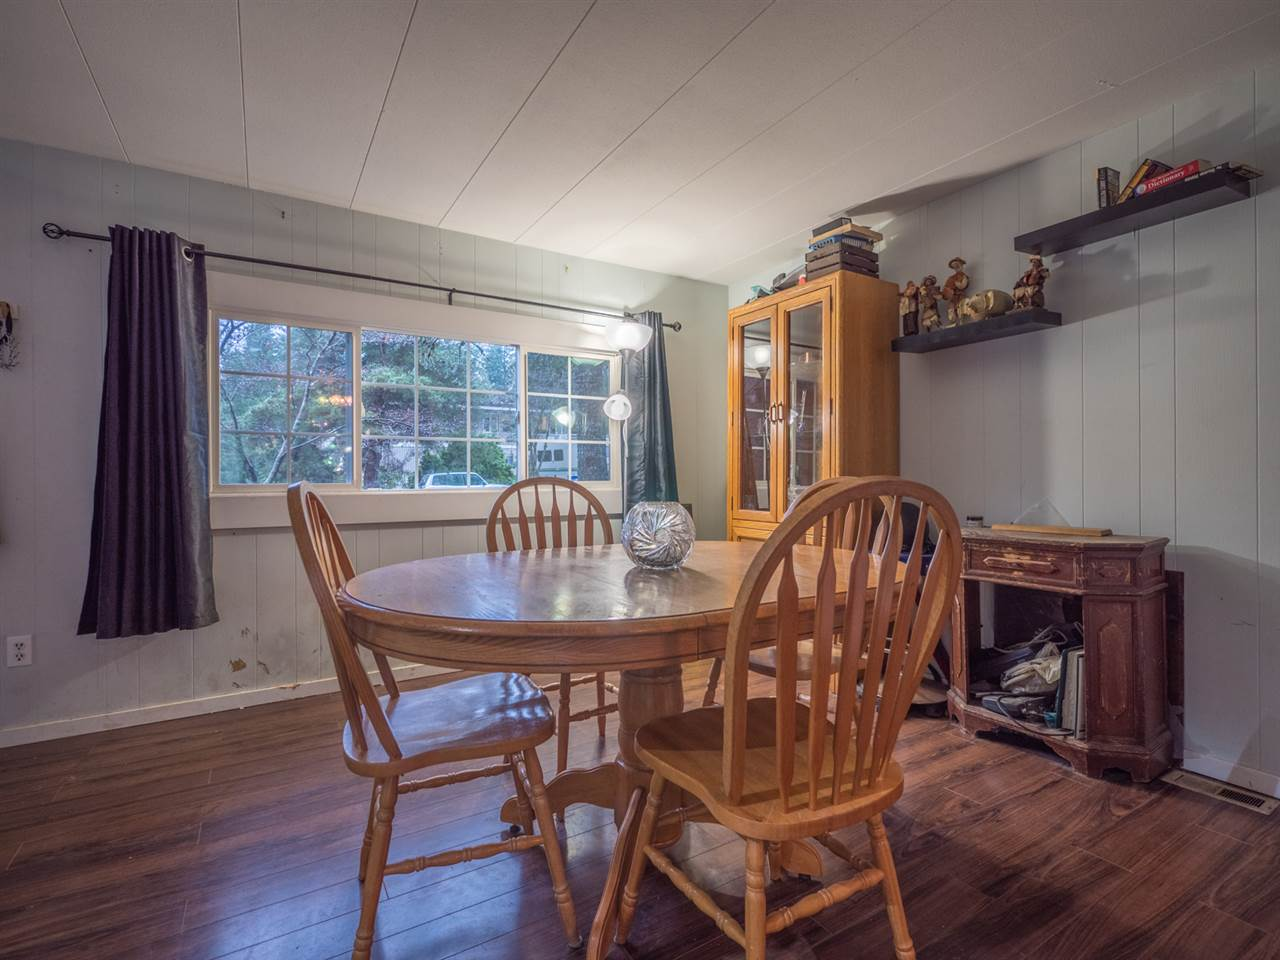 Photo 6: Photos: 5592 WAKEFIELD Road in Sechelt: Sechelt District Manufactured Home for sale (Sunshine Coast)  : MLS® # R2230720